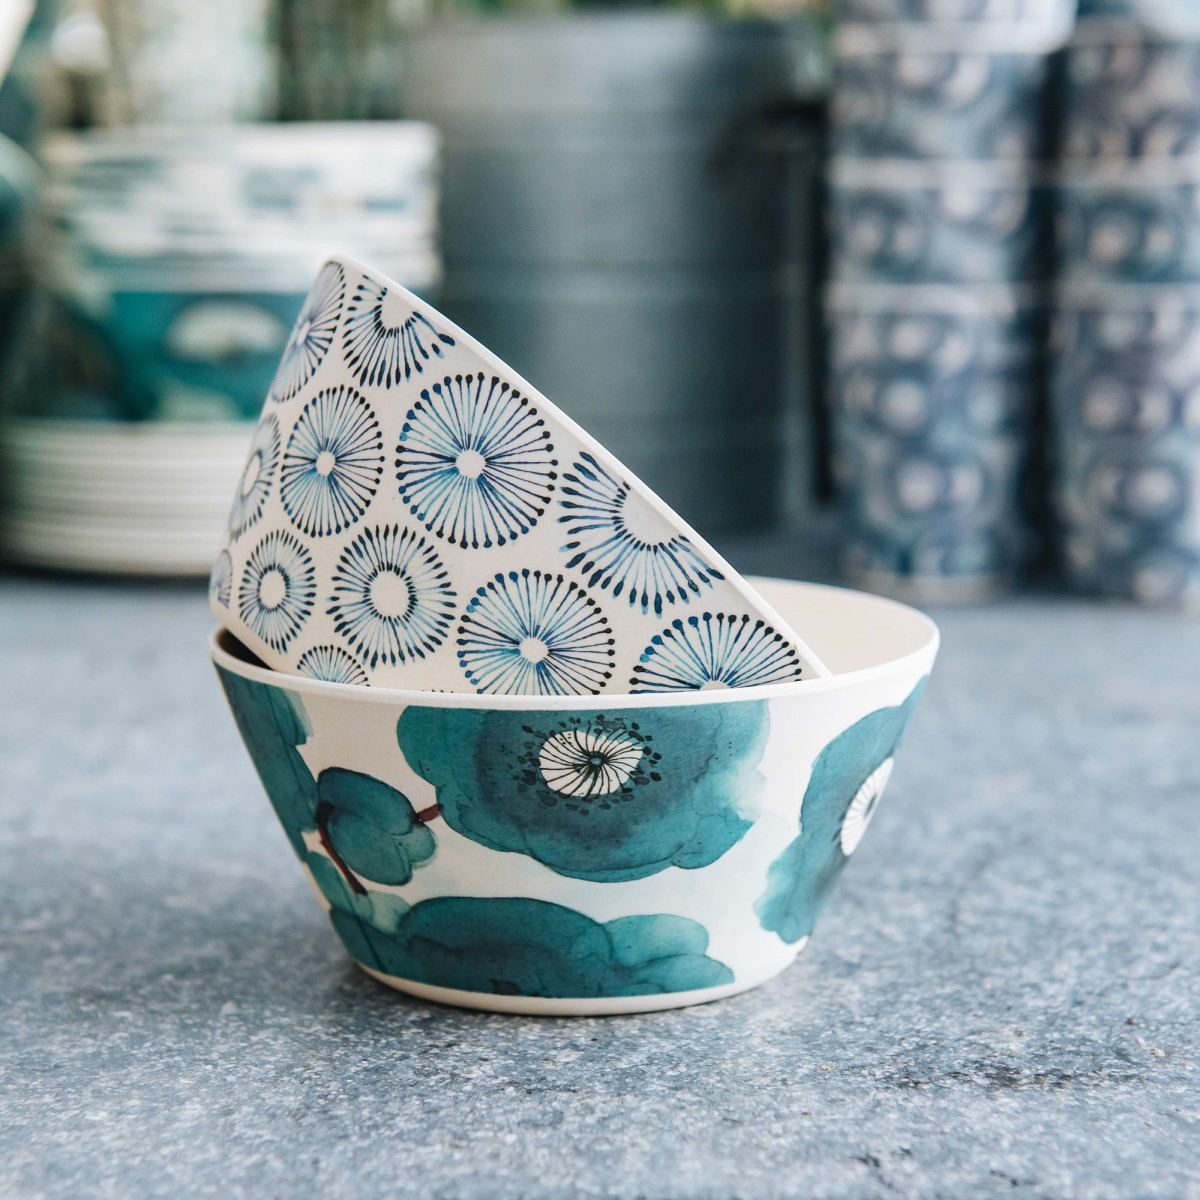 Bamboo Bowls from Burford Garden Company